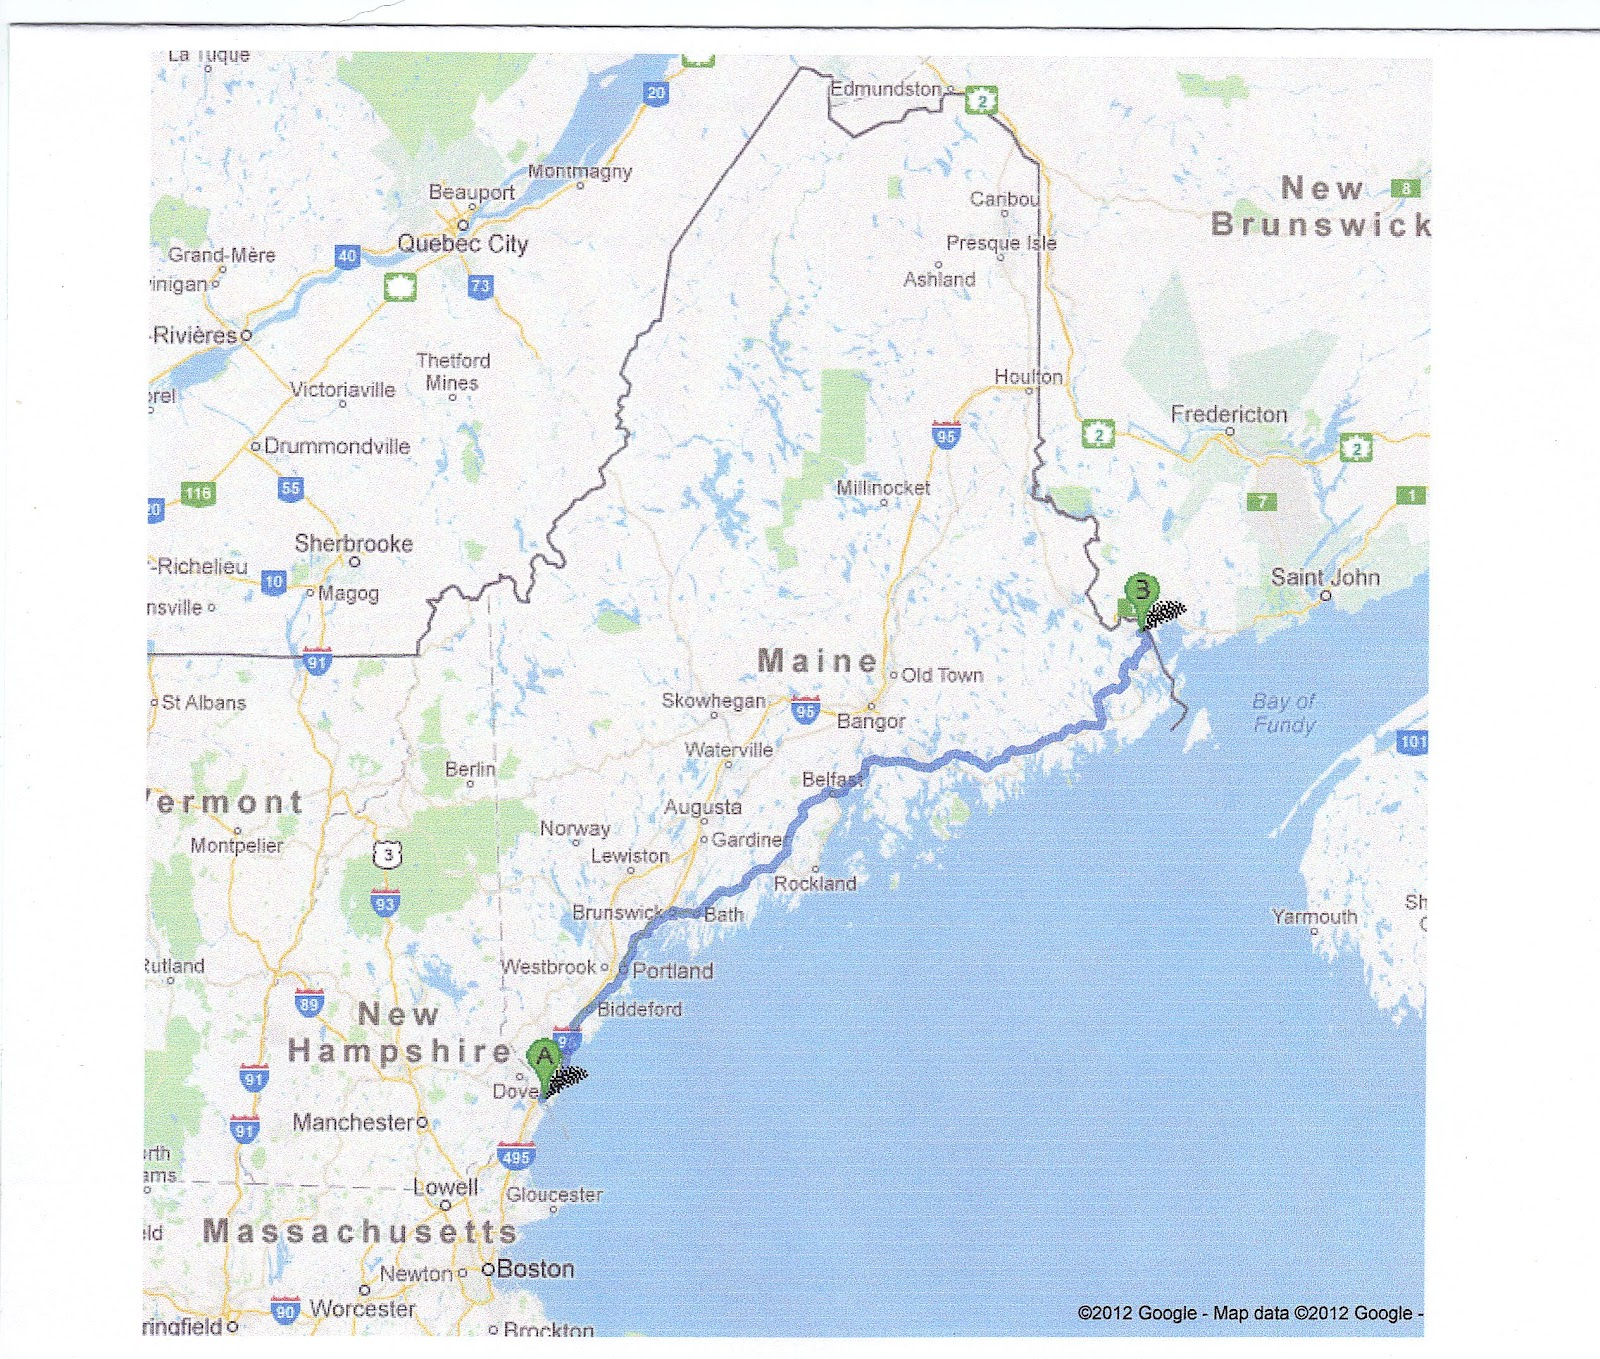 Map Of Southern Maine Coastal Pictures To Pin On Pinterest - PinsDaddy